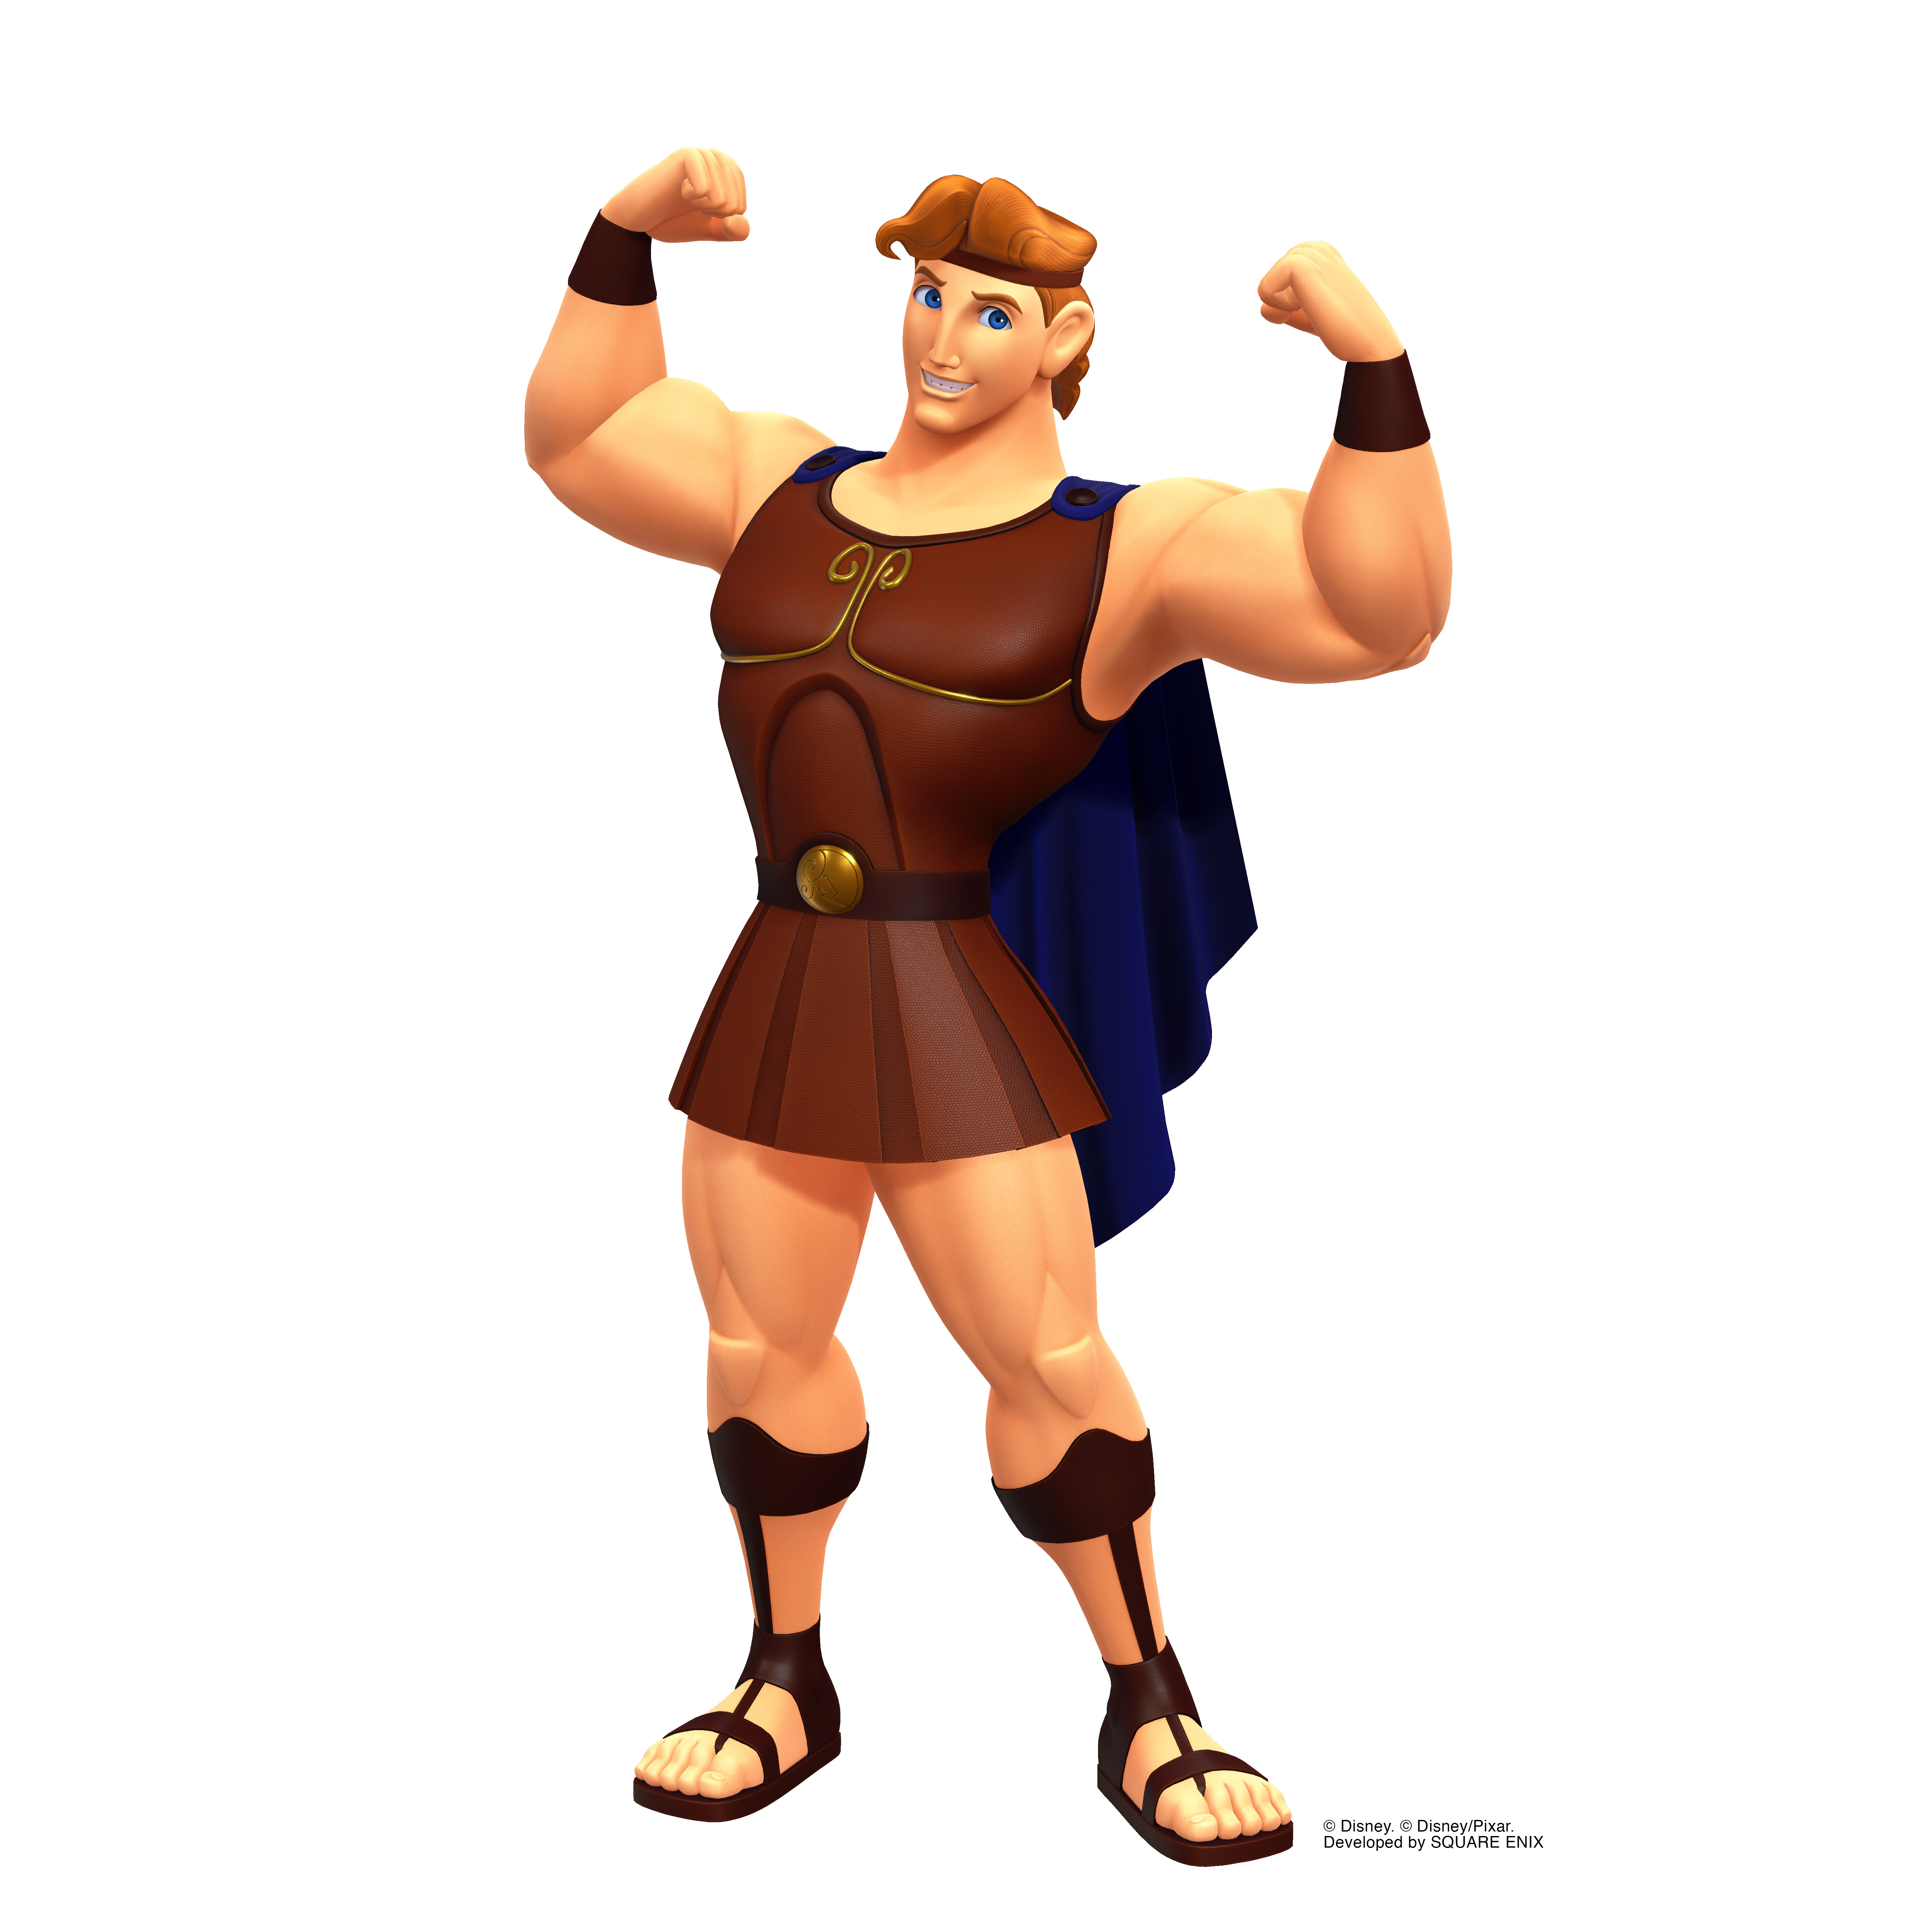 New Olympus Renders show off Phil, Zeus, Megara and more from